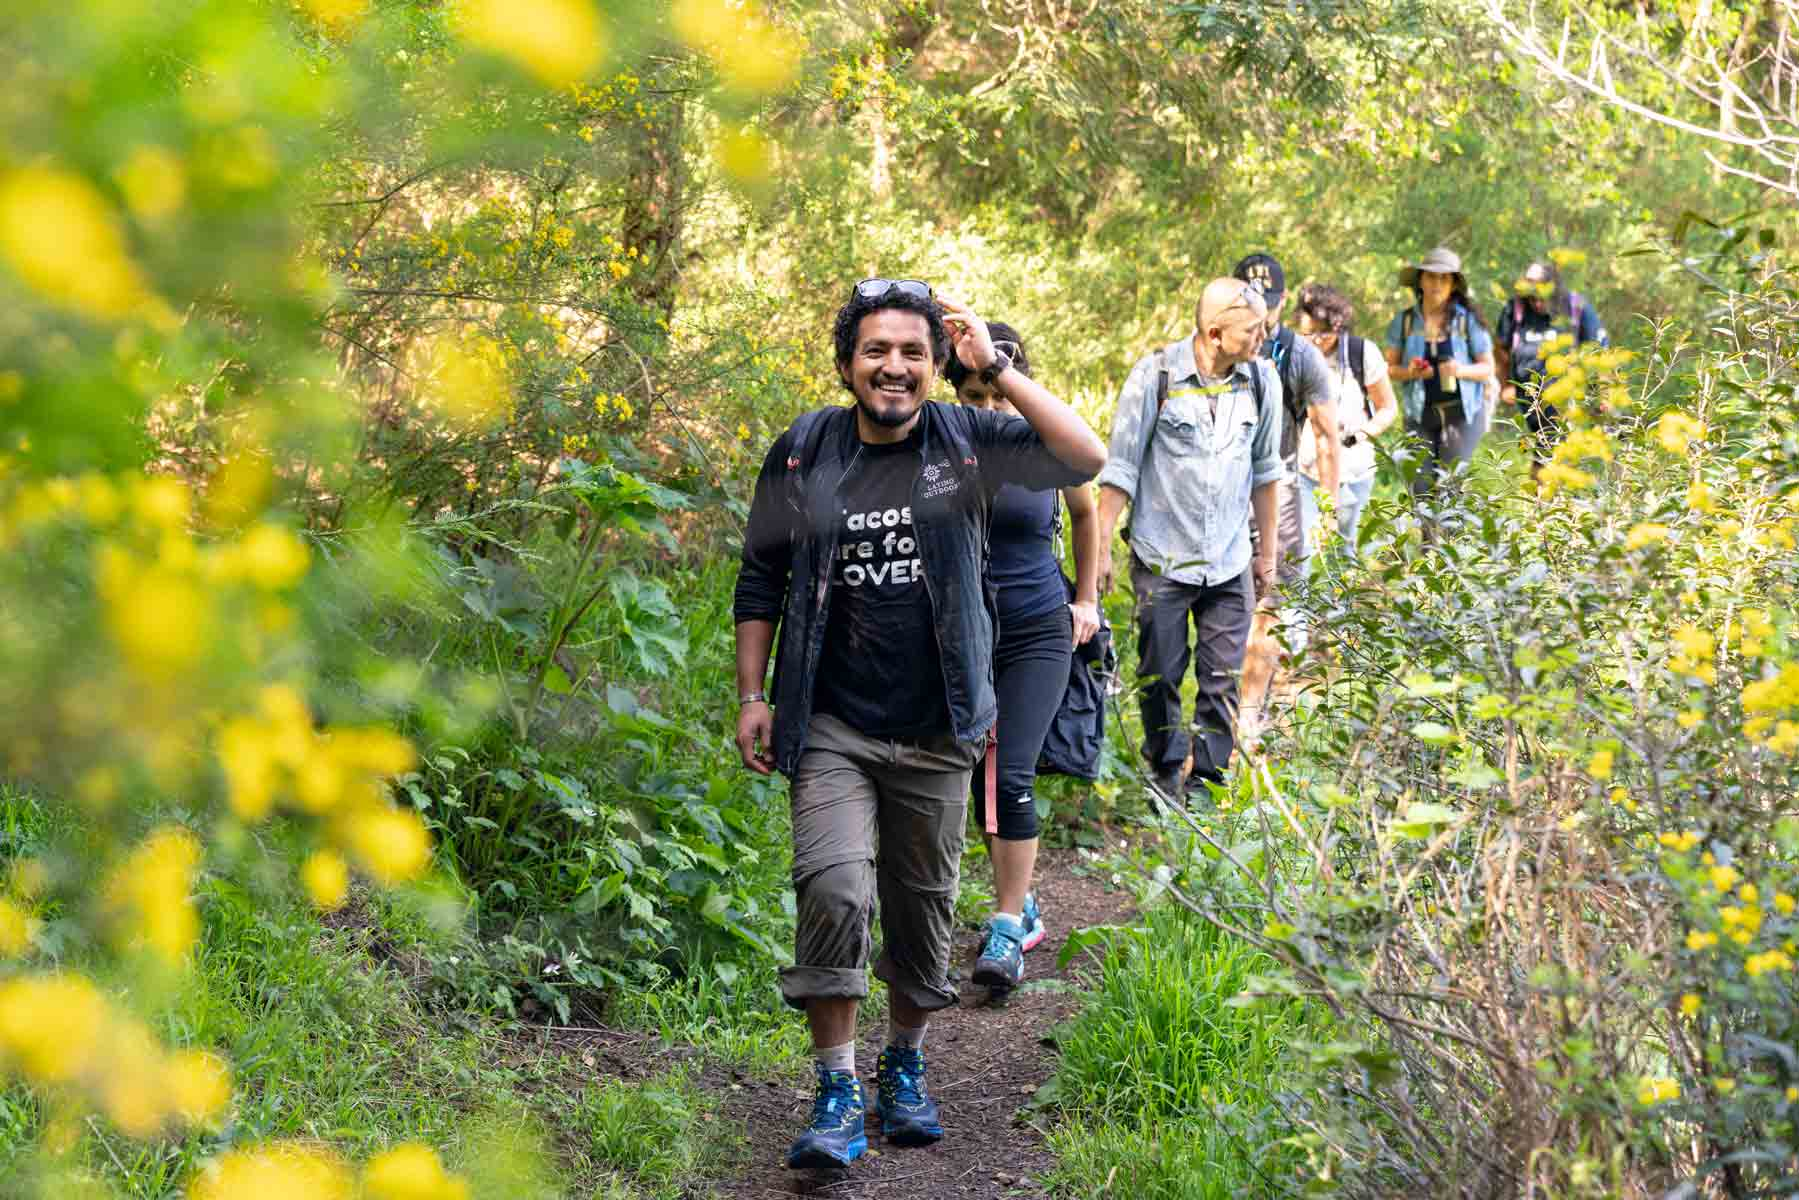 Tear down, build back up, repeat: Bringing diversity to the outdoors with Jose Gonzalez